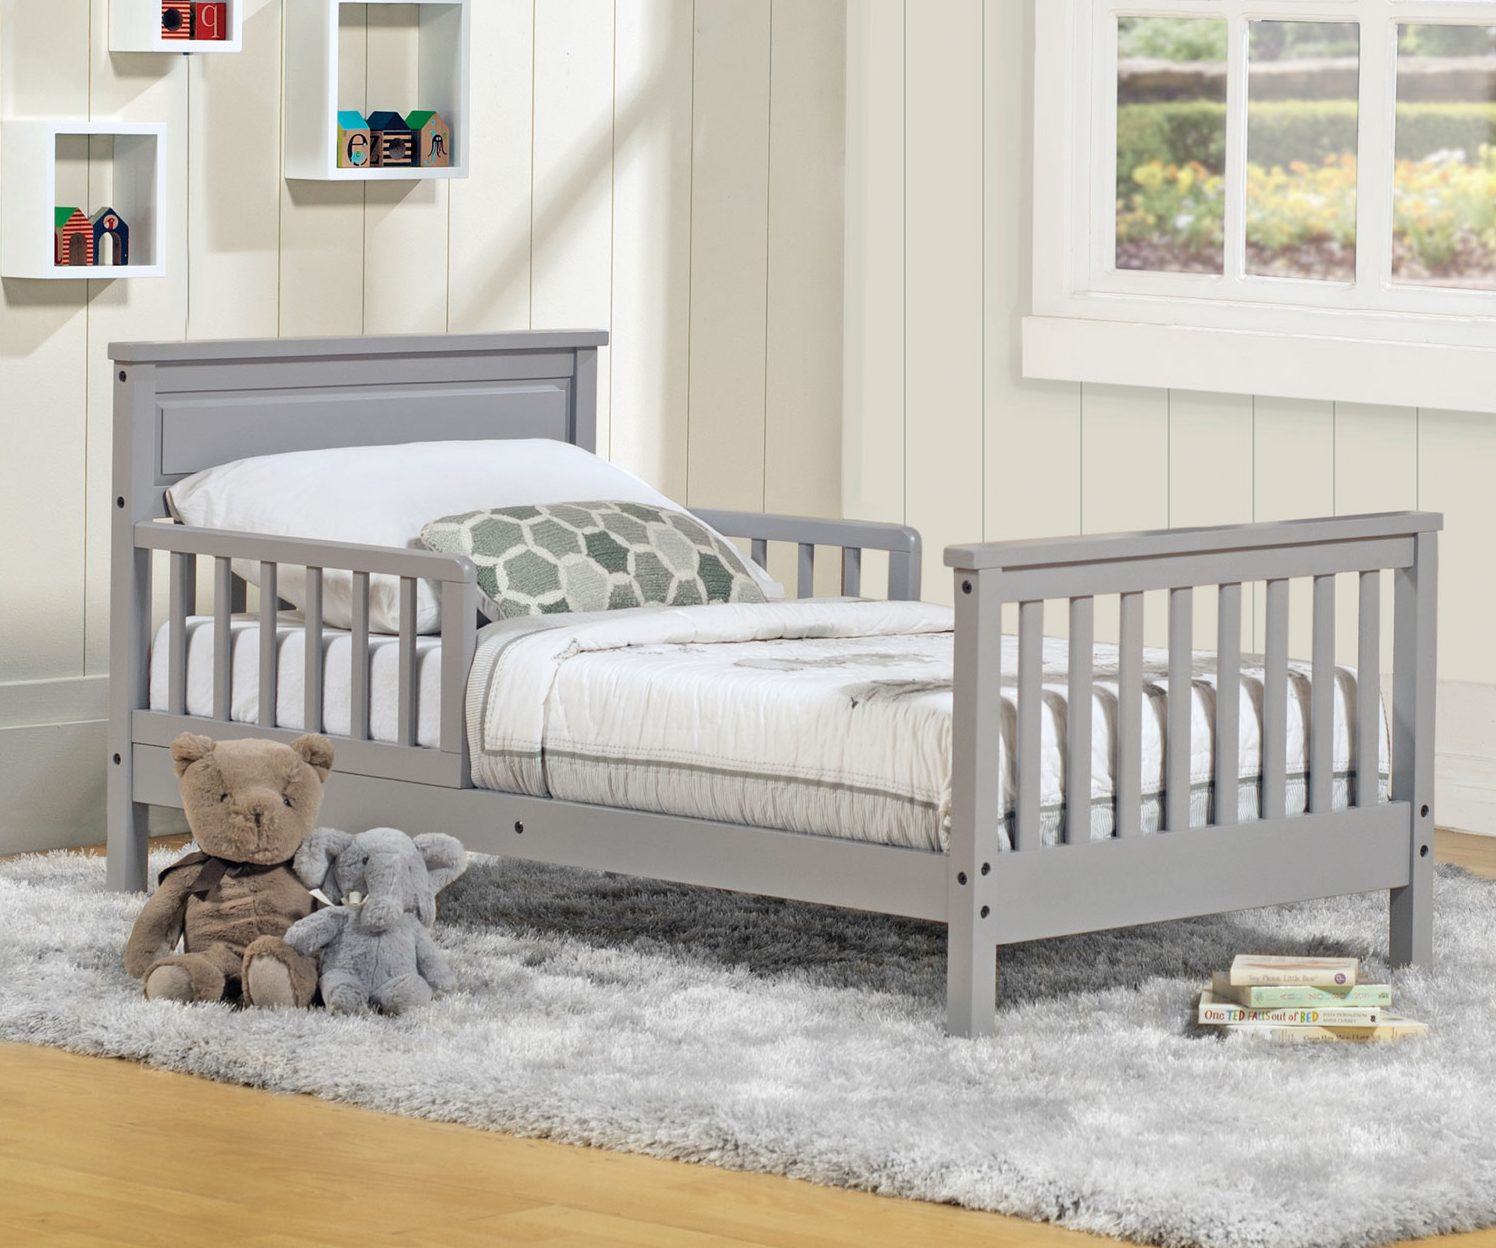 Incredible Toddler Bed Buying Guide Best Buy Blog Download Free Architecture Designs Xerocsunscenecom